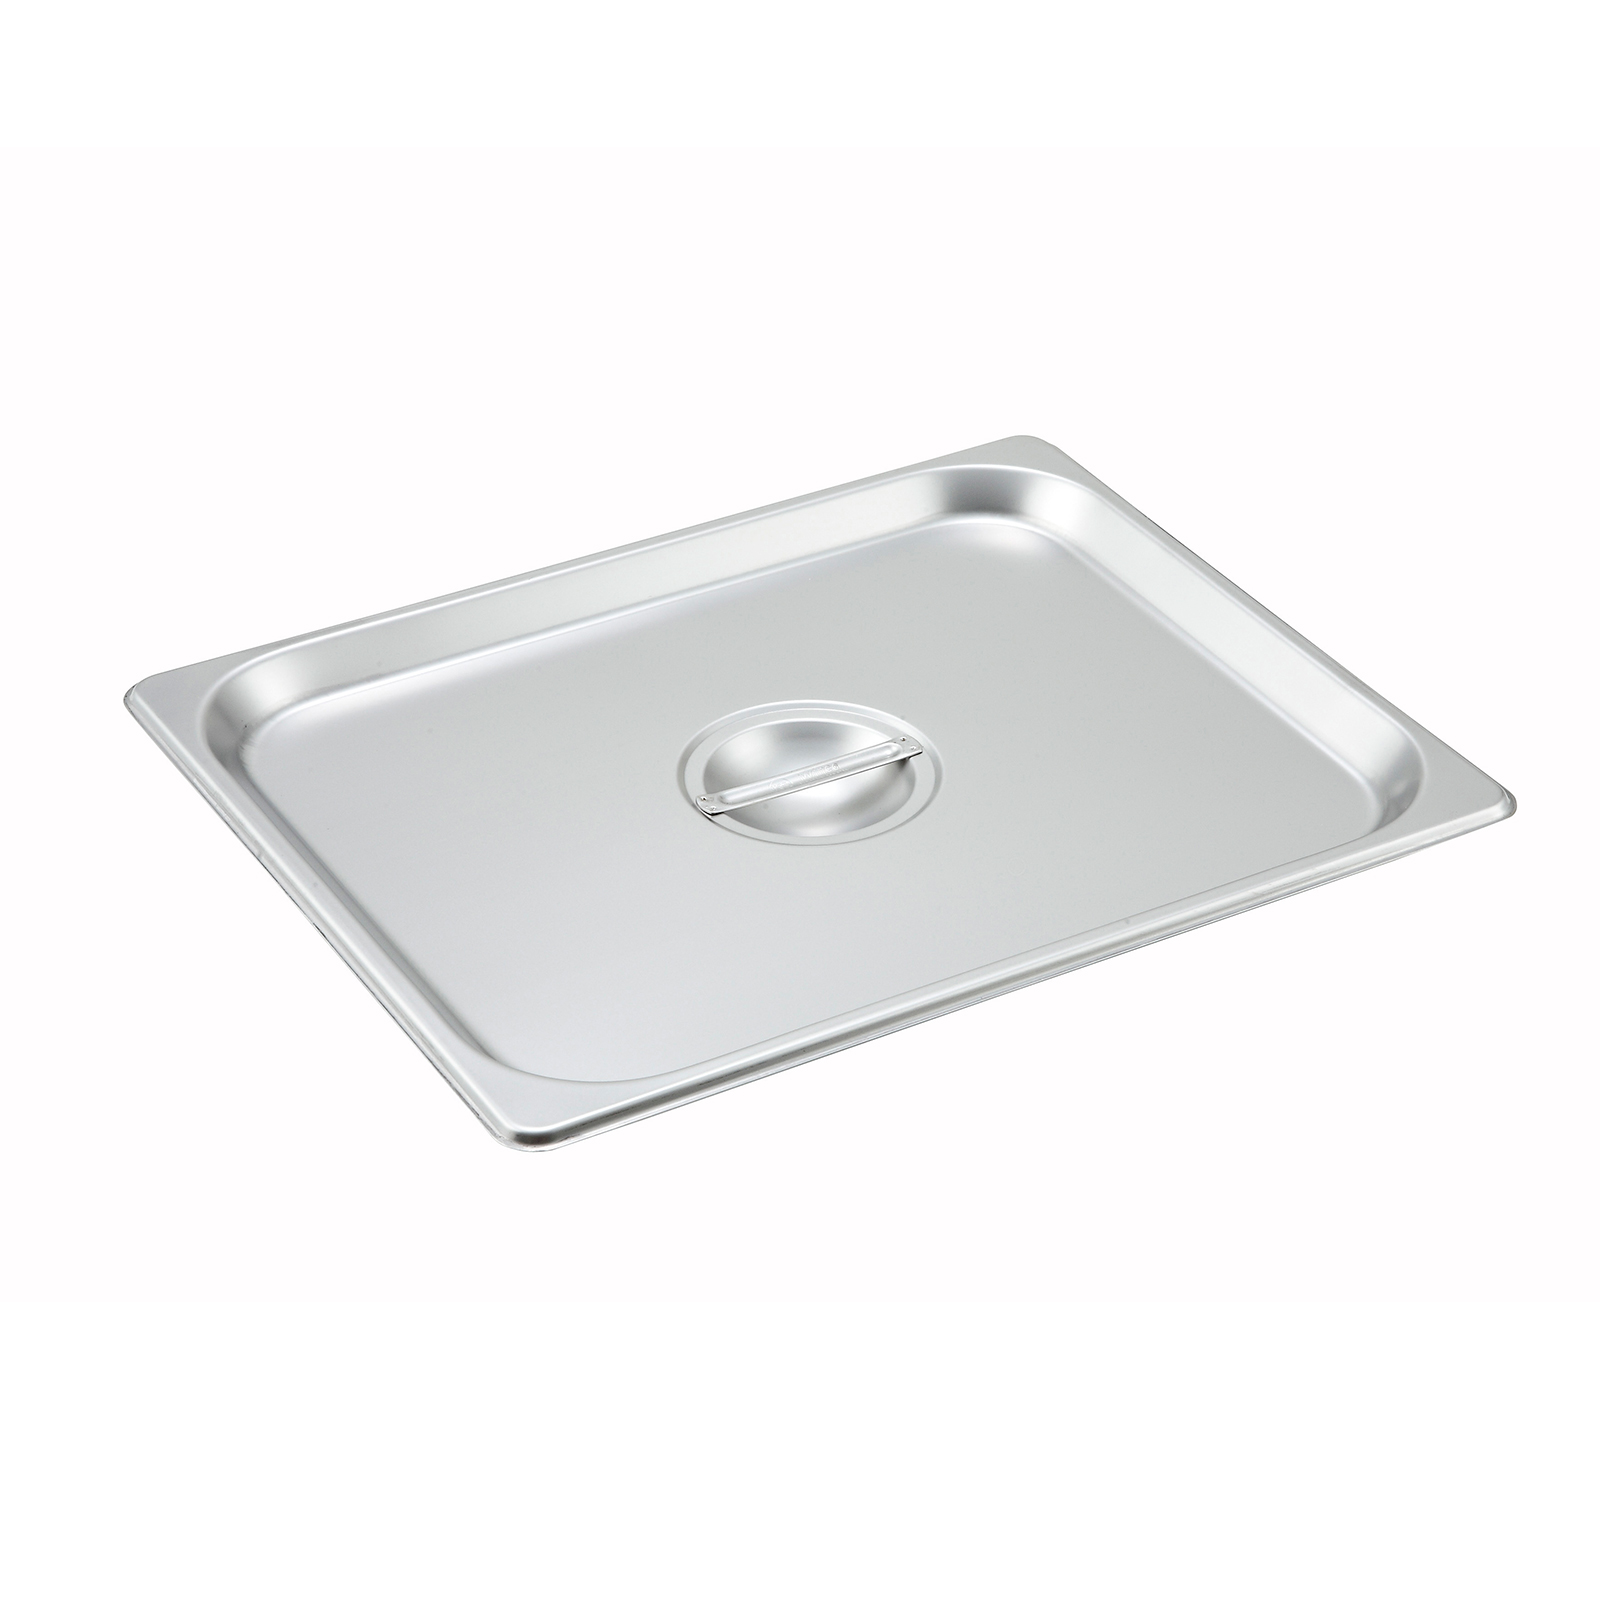 Winco SPSCH steam table pan cover, stainless steel